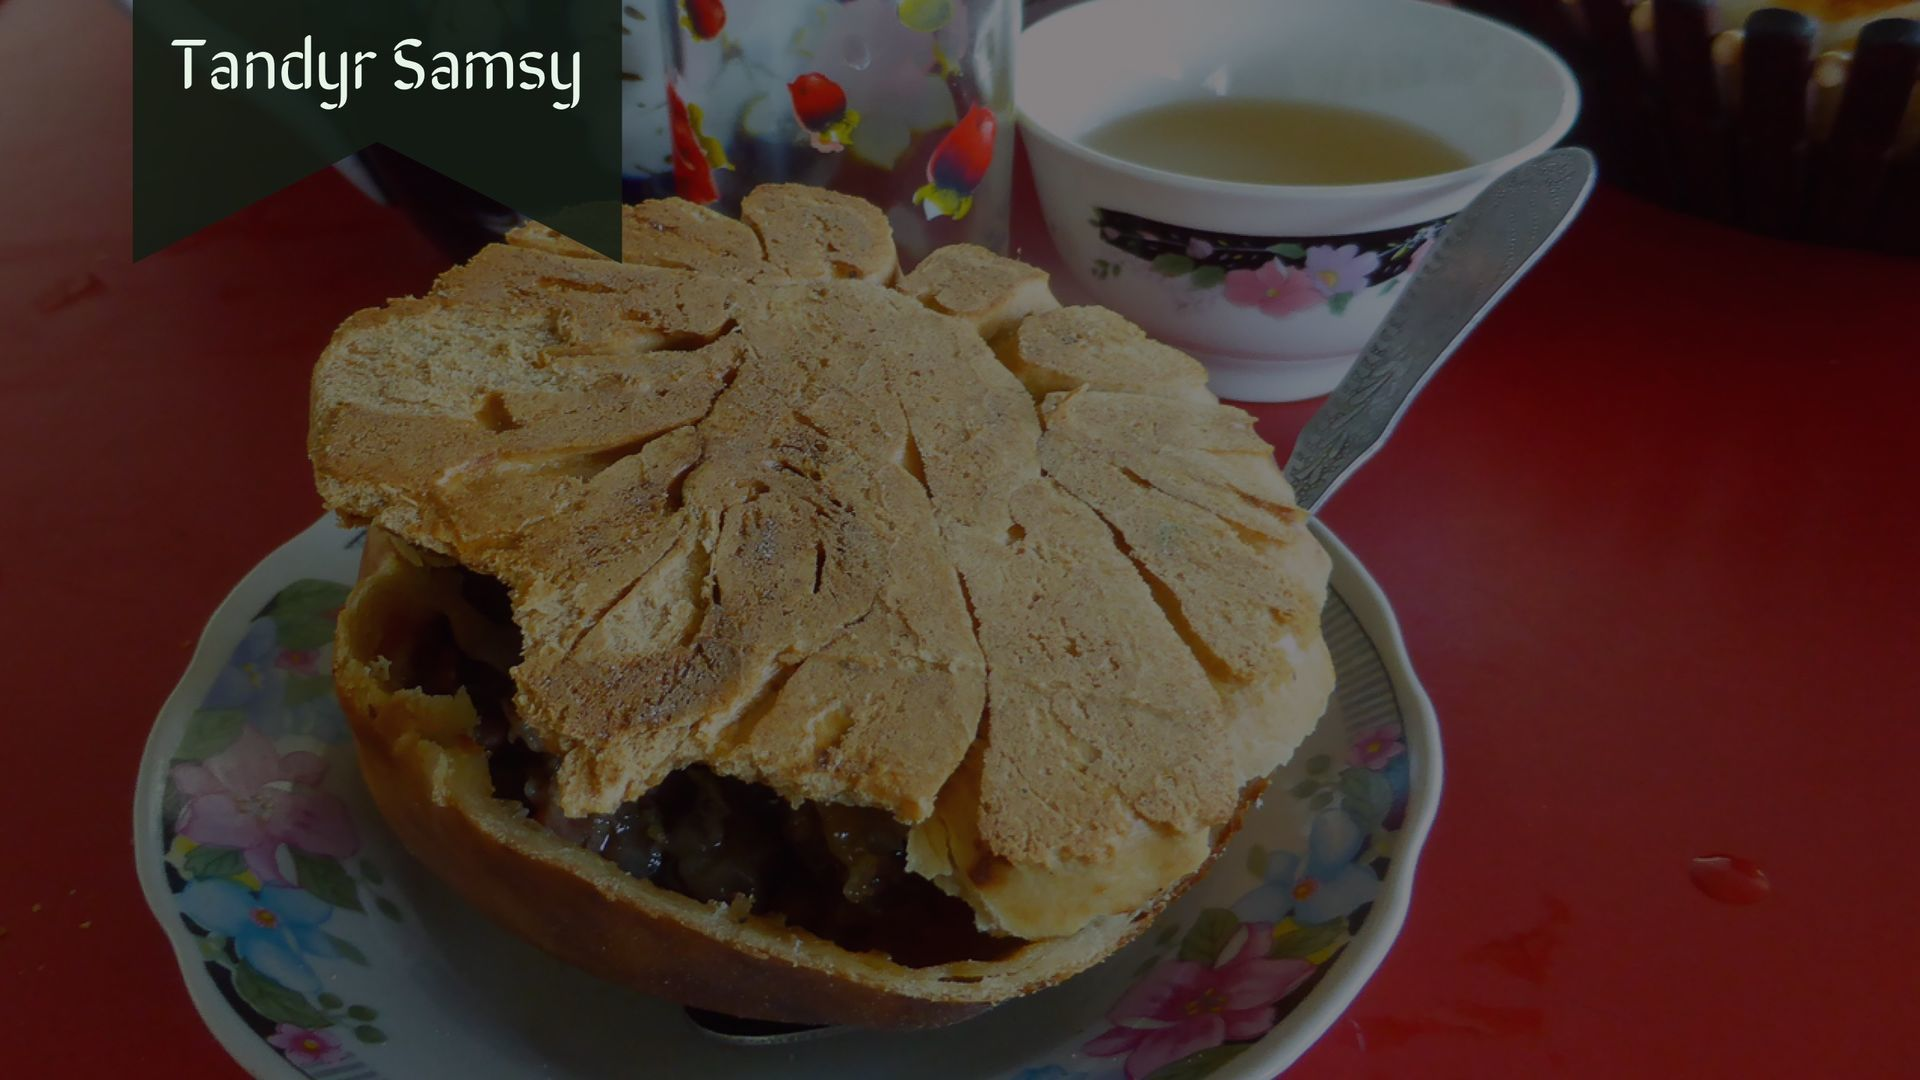 Tandyr Samsy in Osh, Central Asian Cuisine